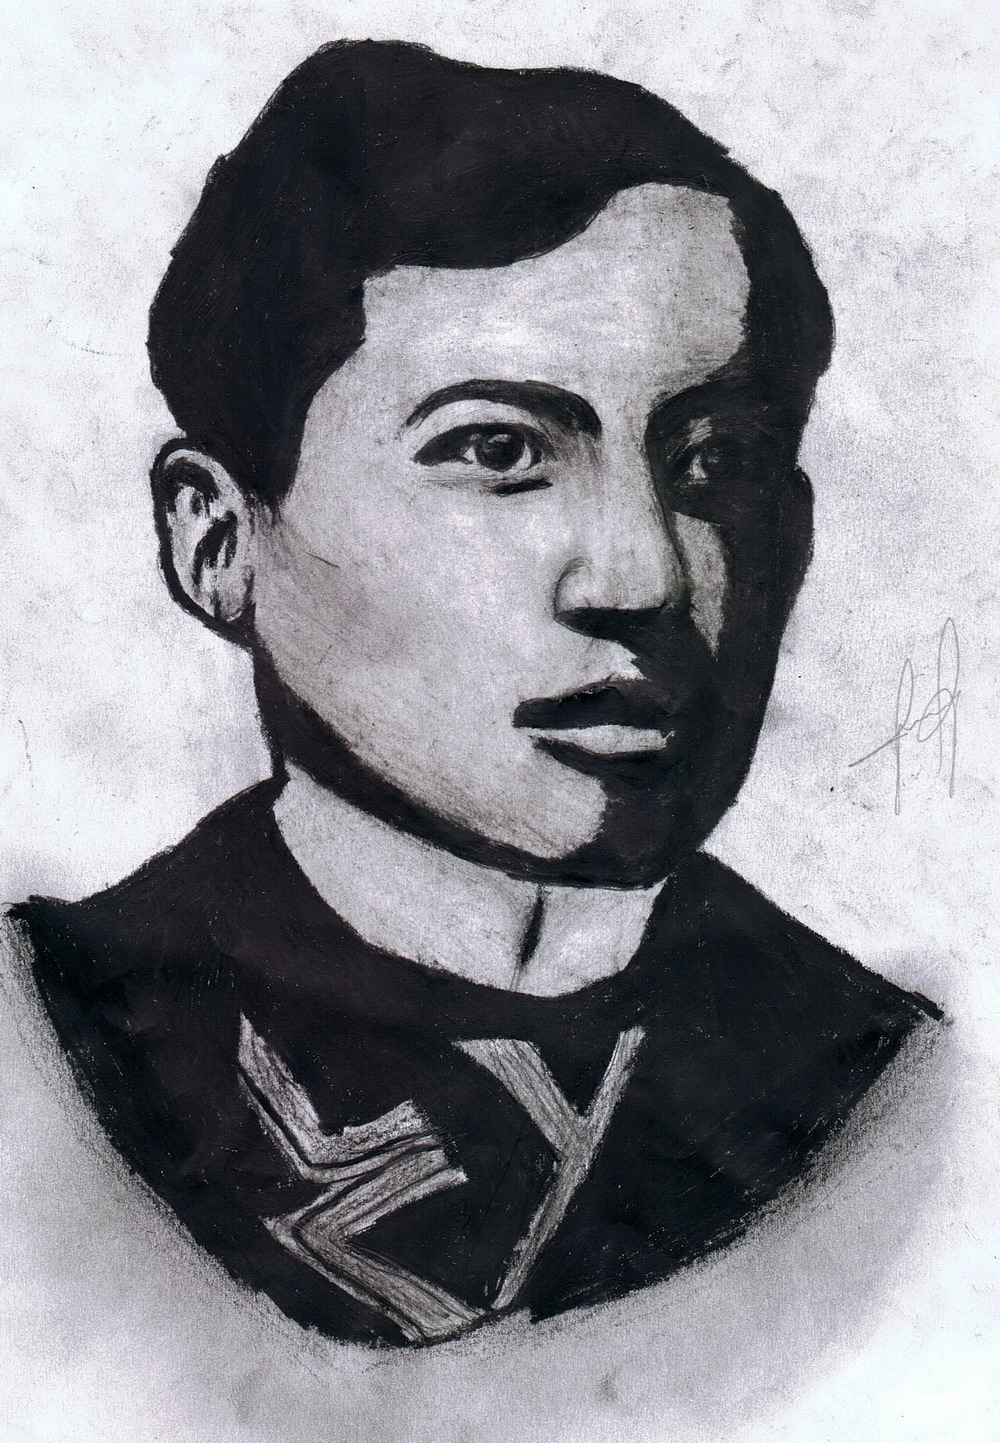 jose rizal Jose rizal's life and works are recounted through a series of non-linear flashbacks which reflect on various aspects of his life - as writer, propagandist, lover.